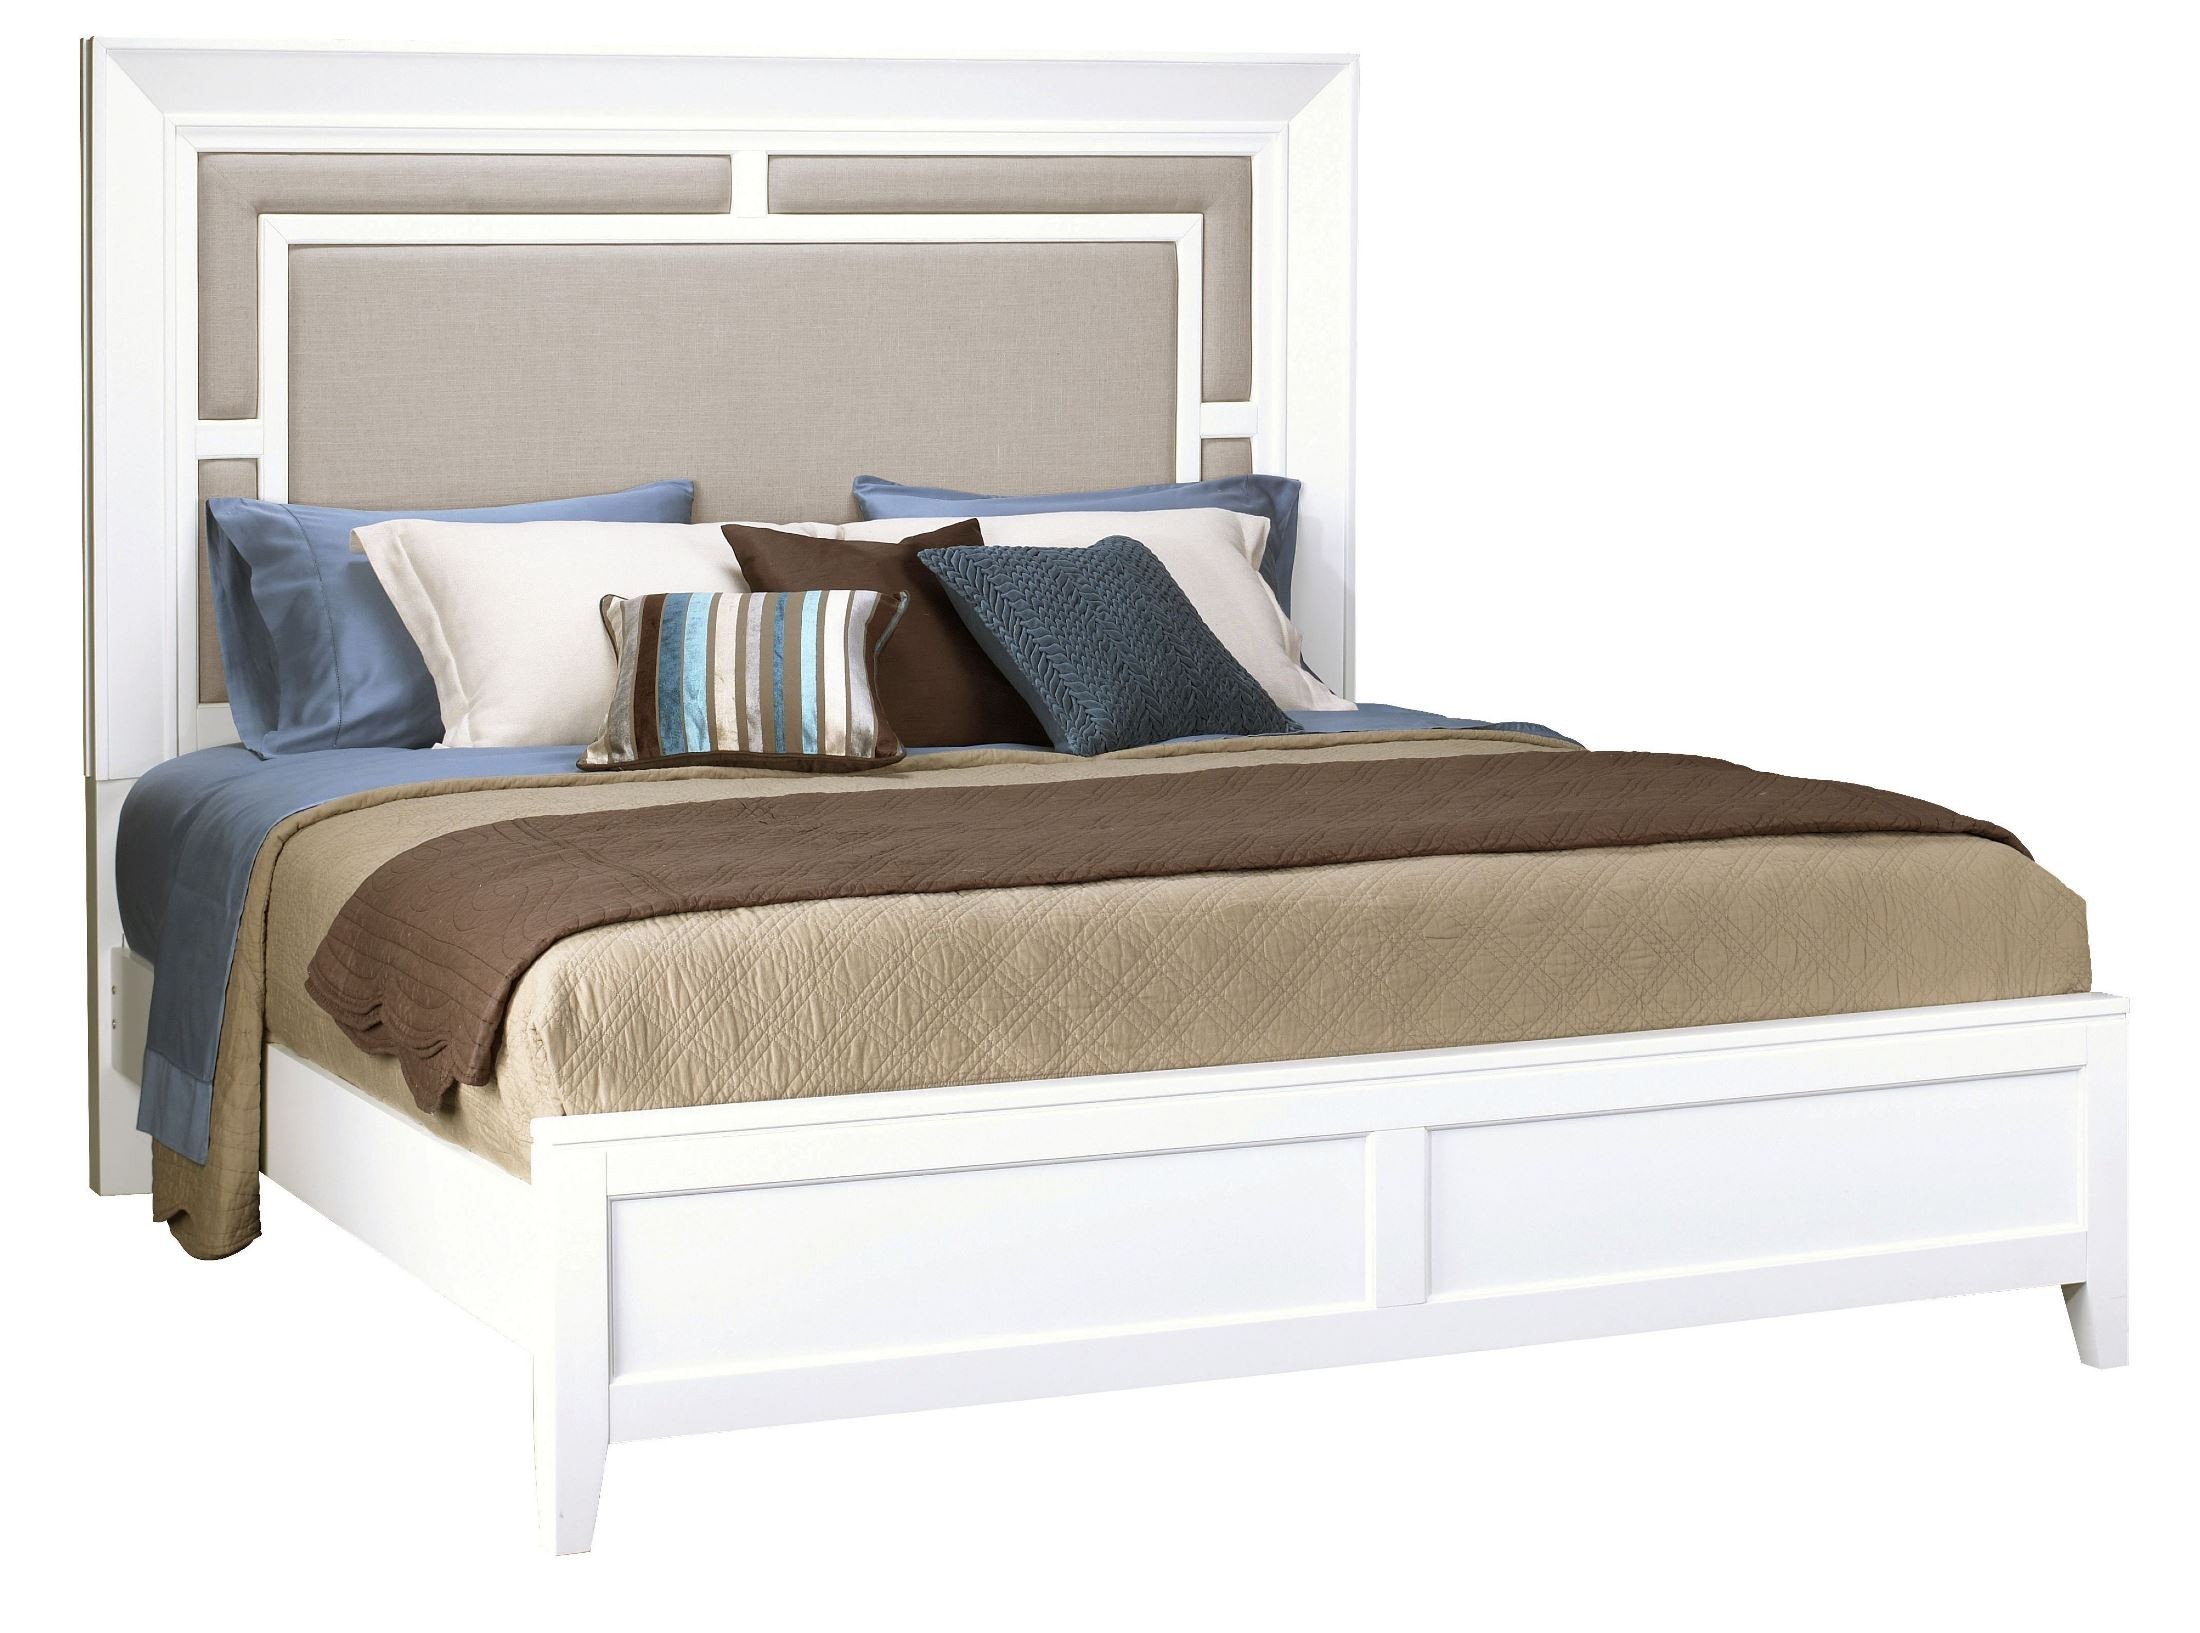 Brighton white cal king size panel bed 8673 270 271 406 for Cal king bed size